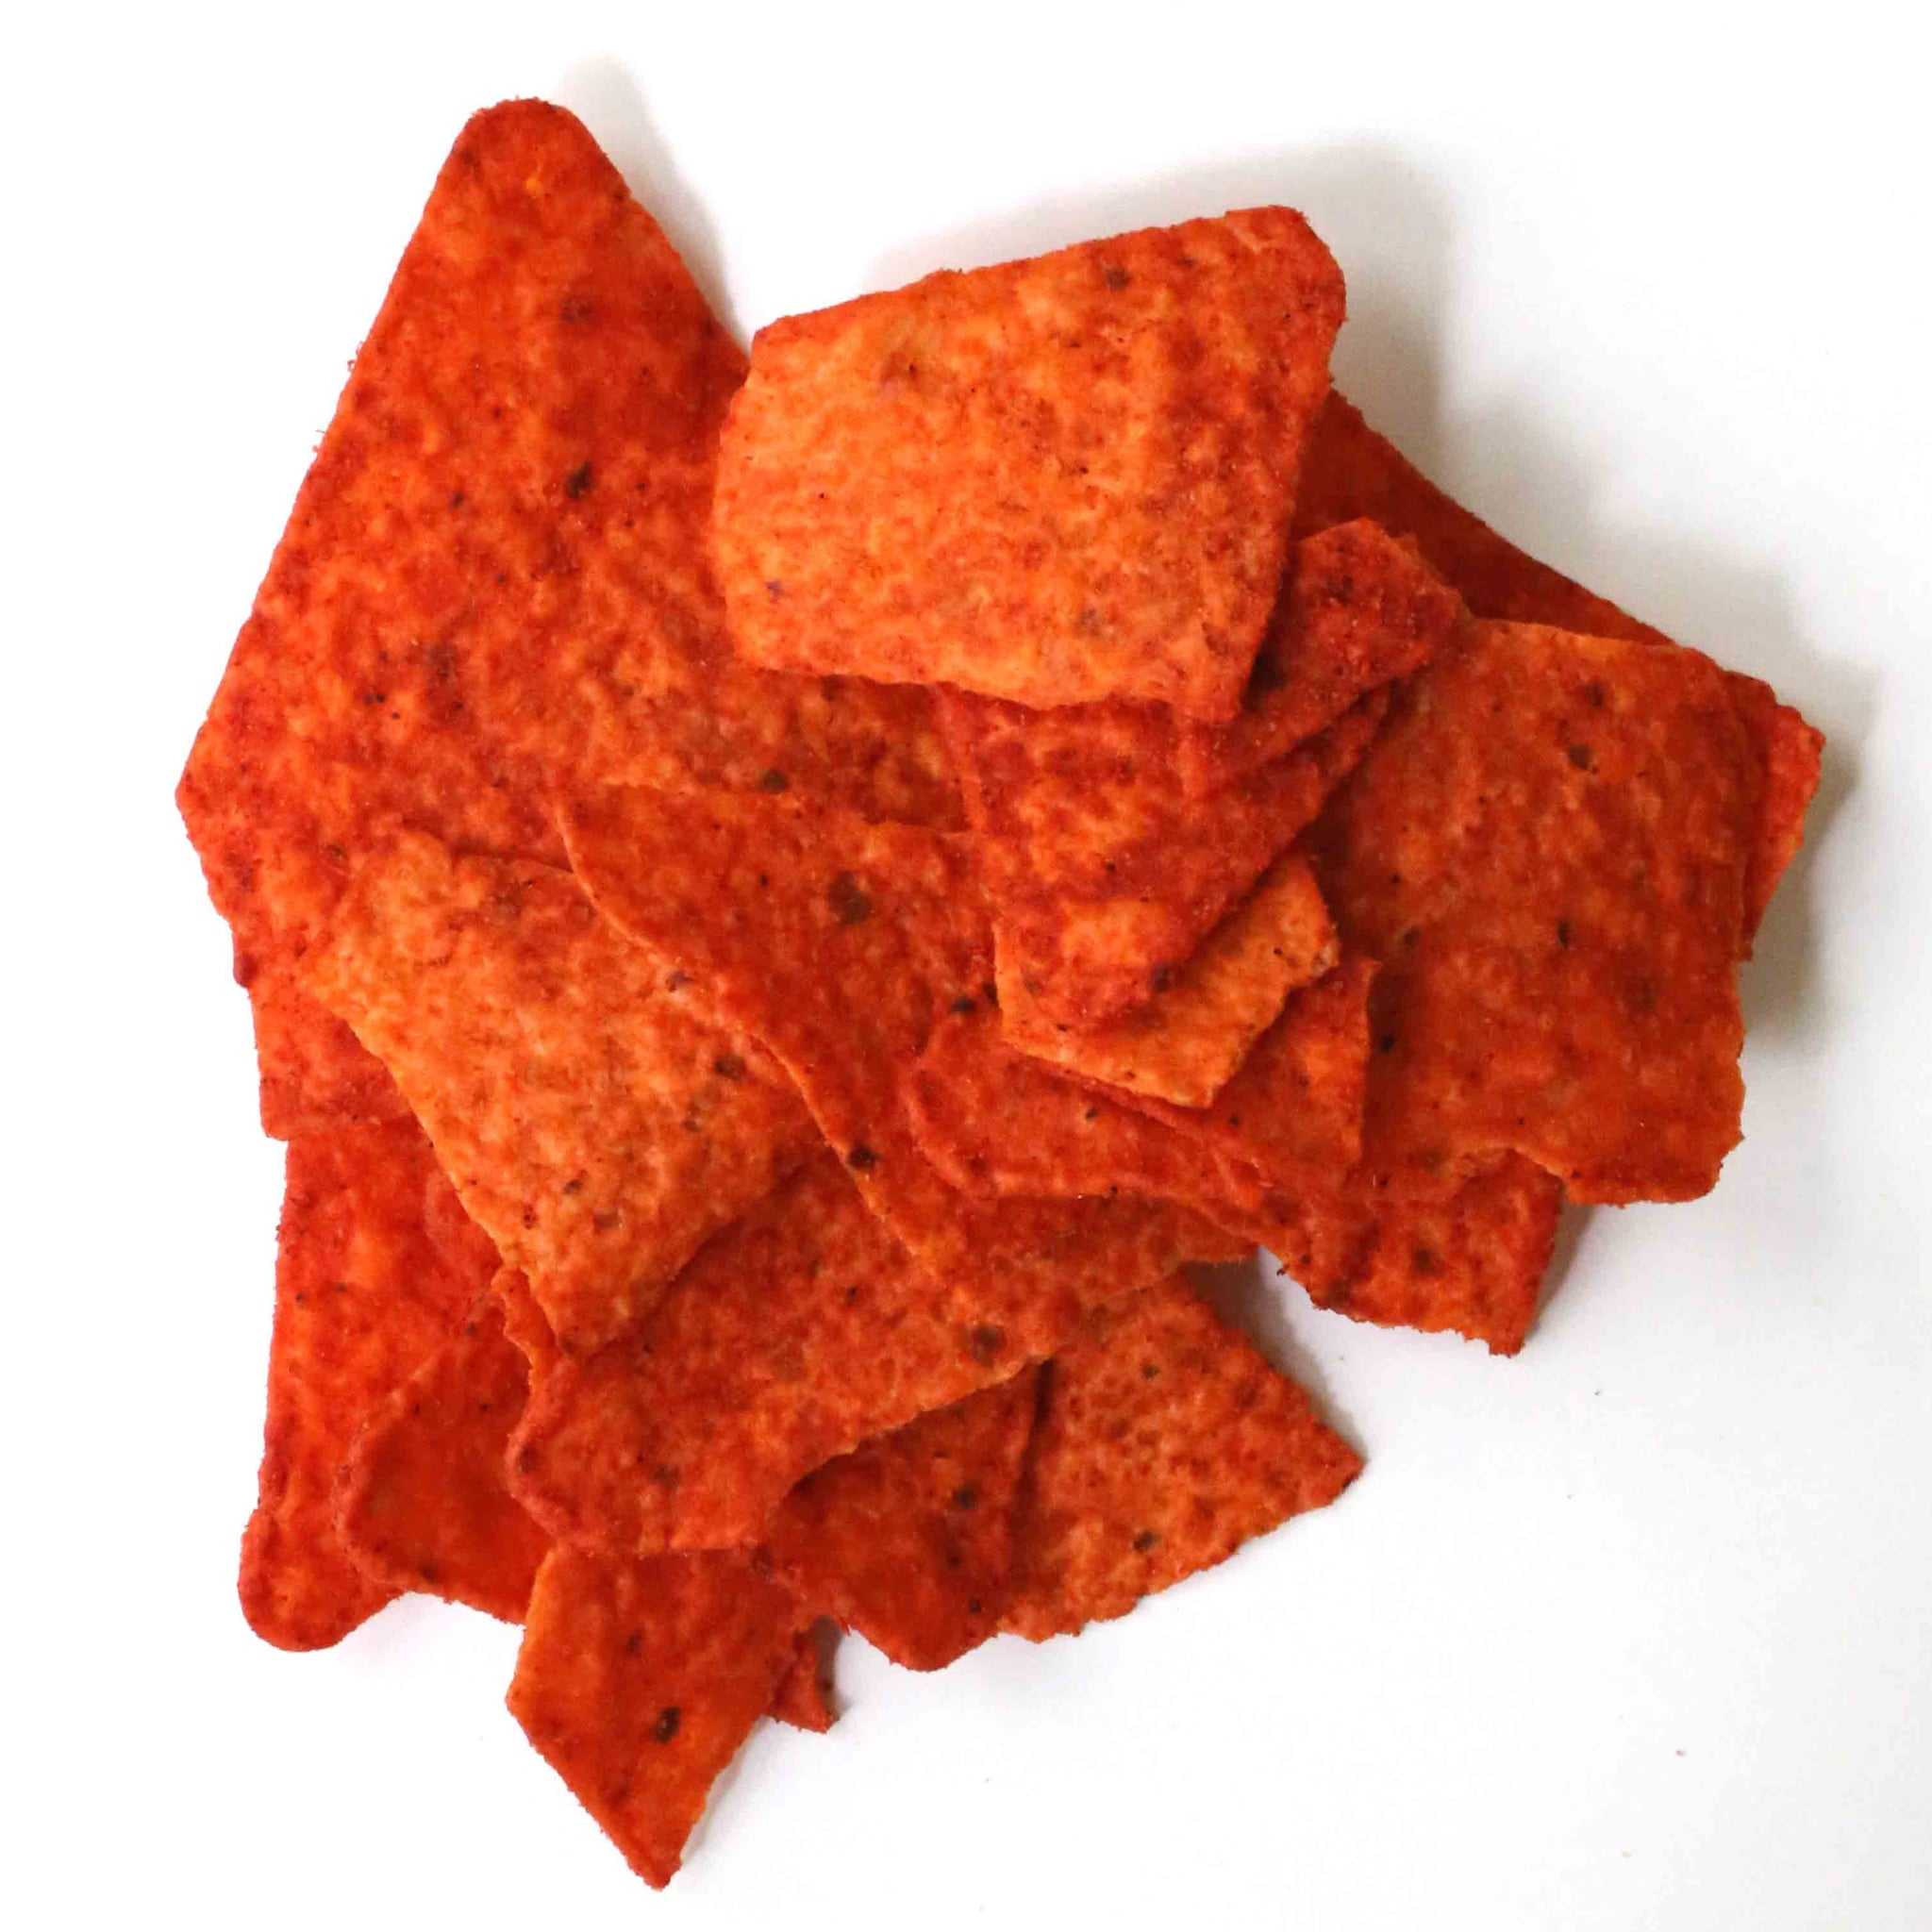 Doritos jacked test flavors sweepstakes